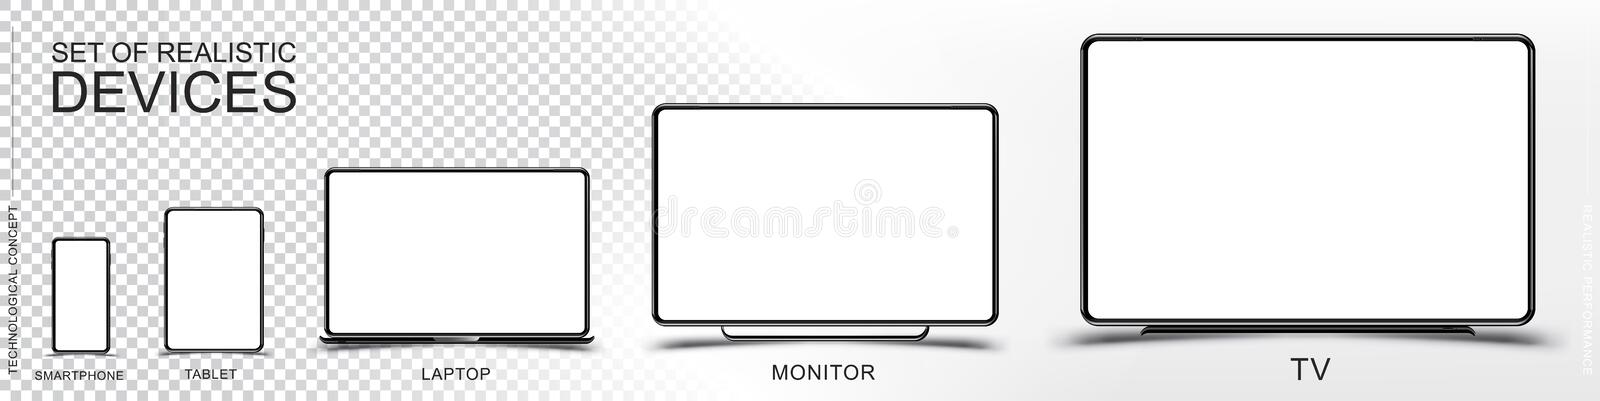 Set Mock-up of realistic devices. Smartphone, tablet, laptop, monitor and TV on a transparent and white background. Flat vector il stock illustration